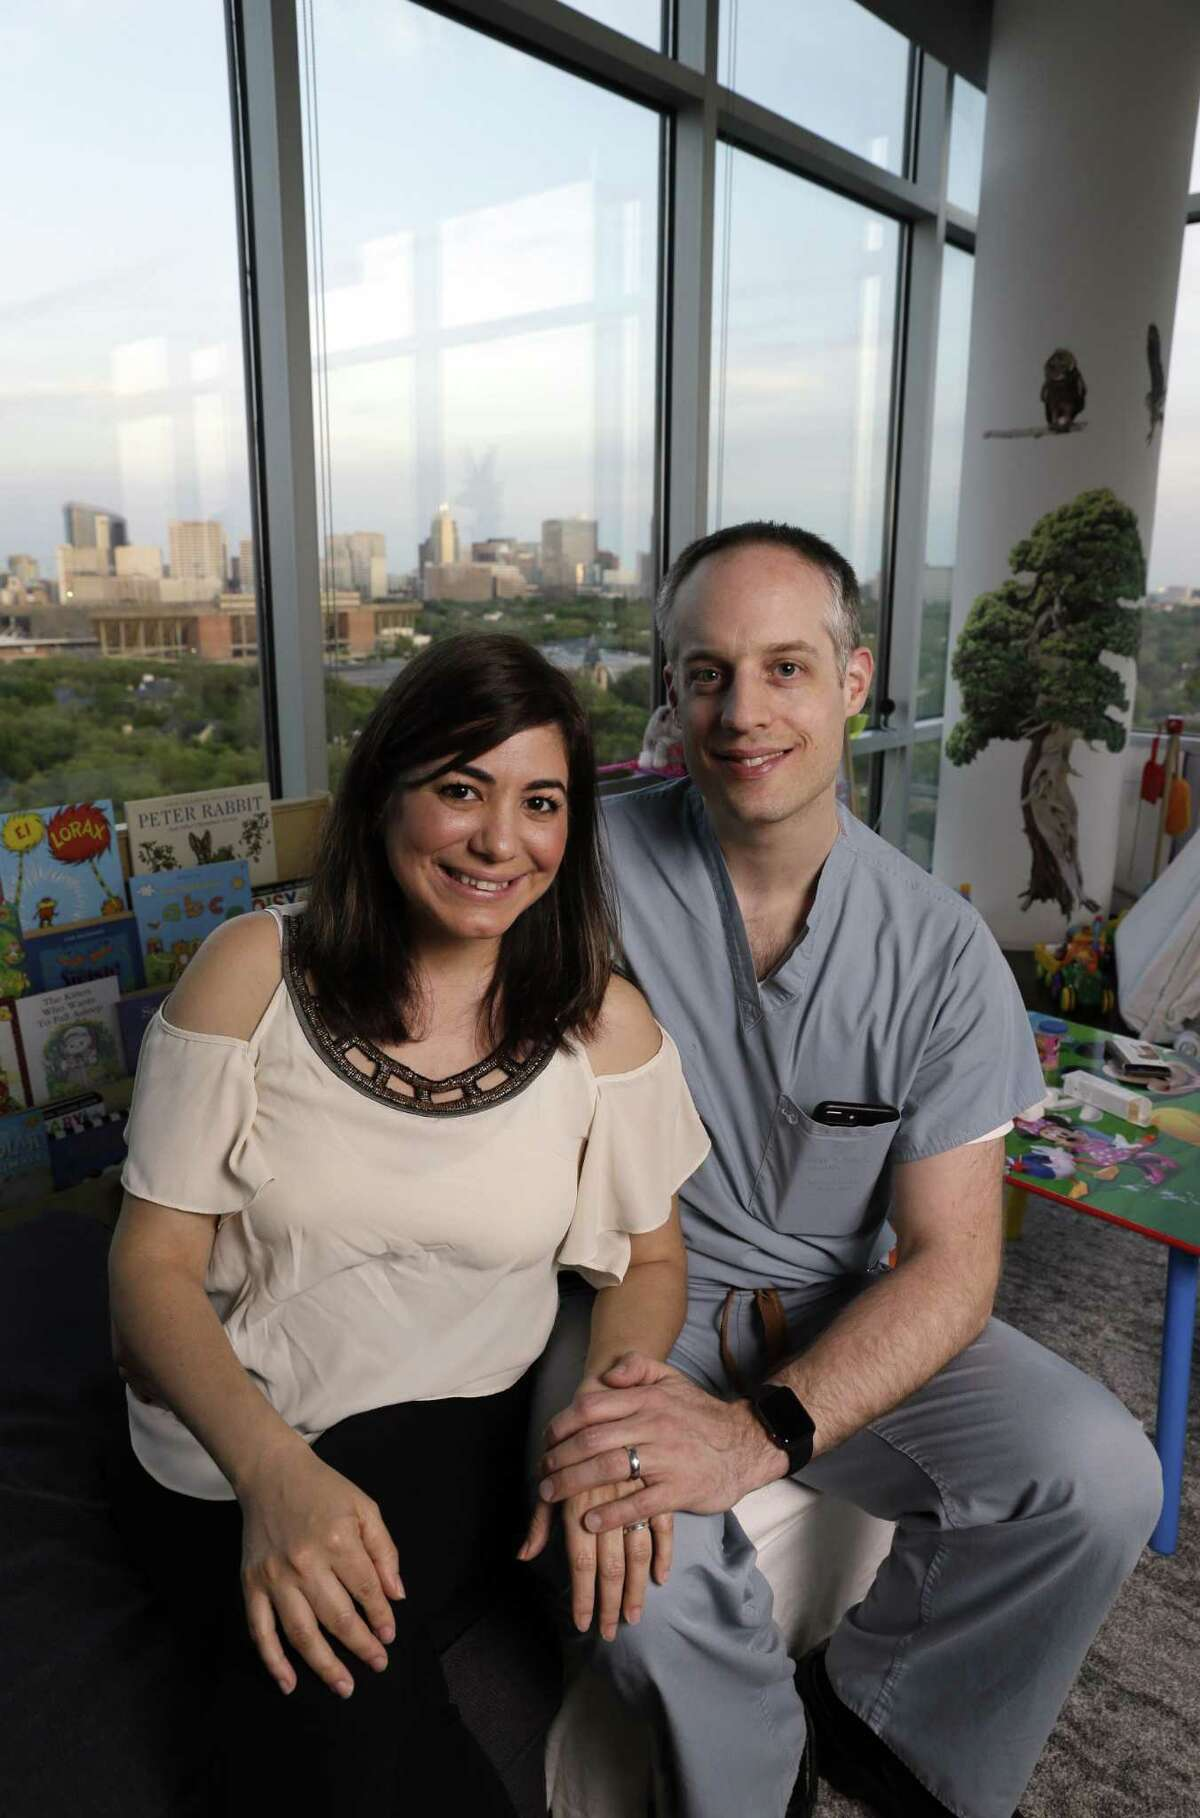 Rivka Colen and Pascal Zinn in the toy strewn living room of their 11th floor apartment overlooking Rice University and the medical center. Pascal and Rivka rescued some 16 neighbors from their flooded homes in Meyerland, where they lived when hurricane Harvey hit last year.